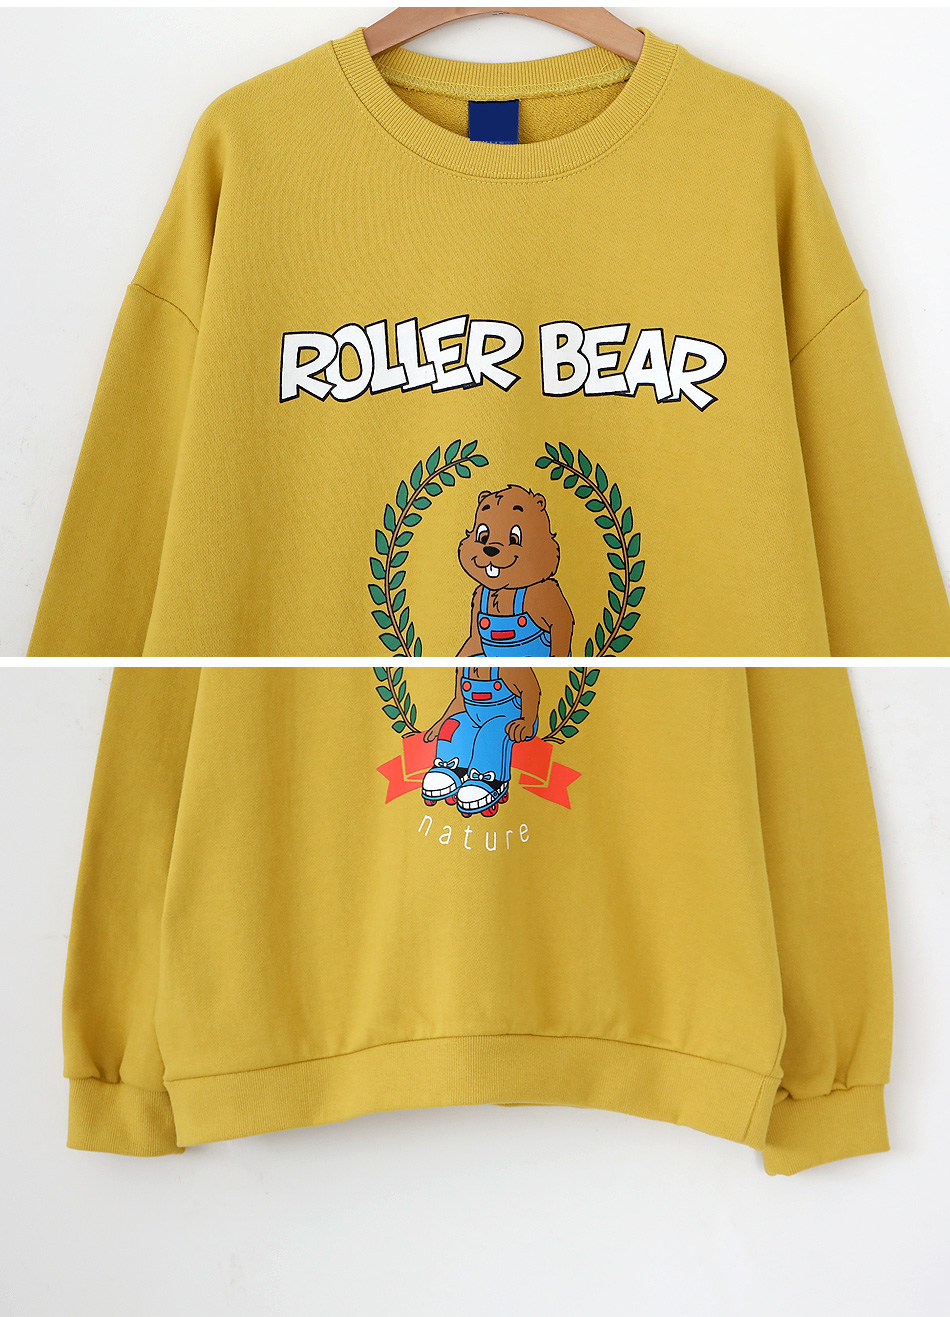 Roller bear one-to-one